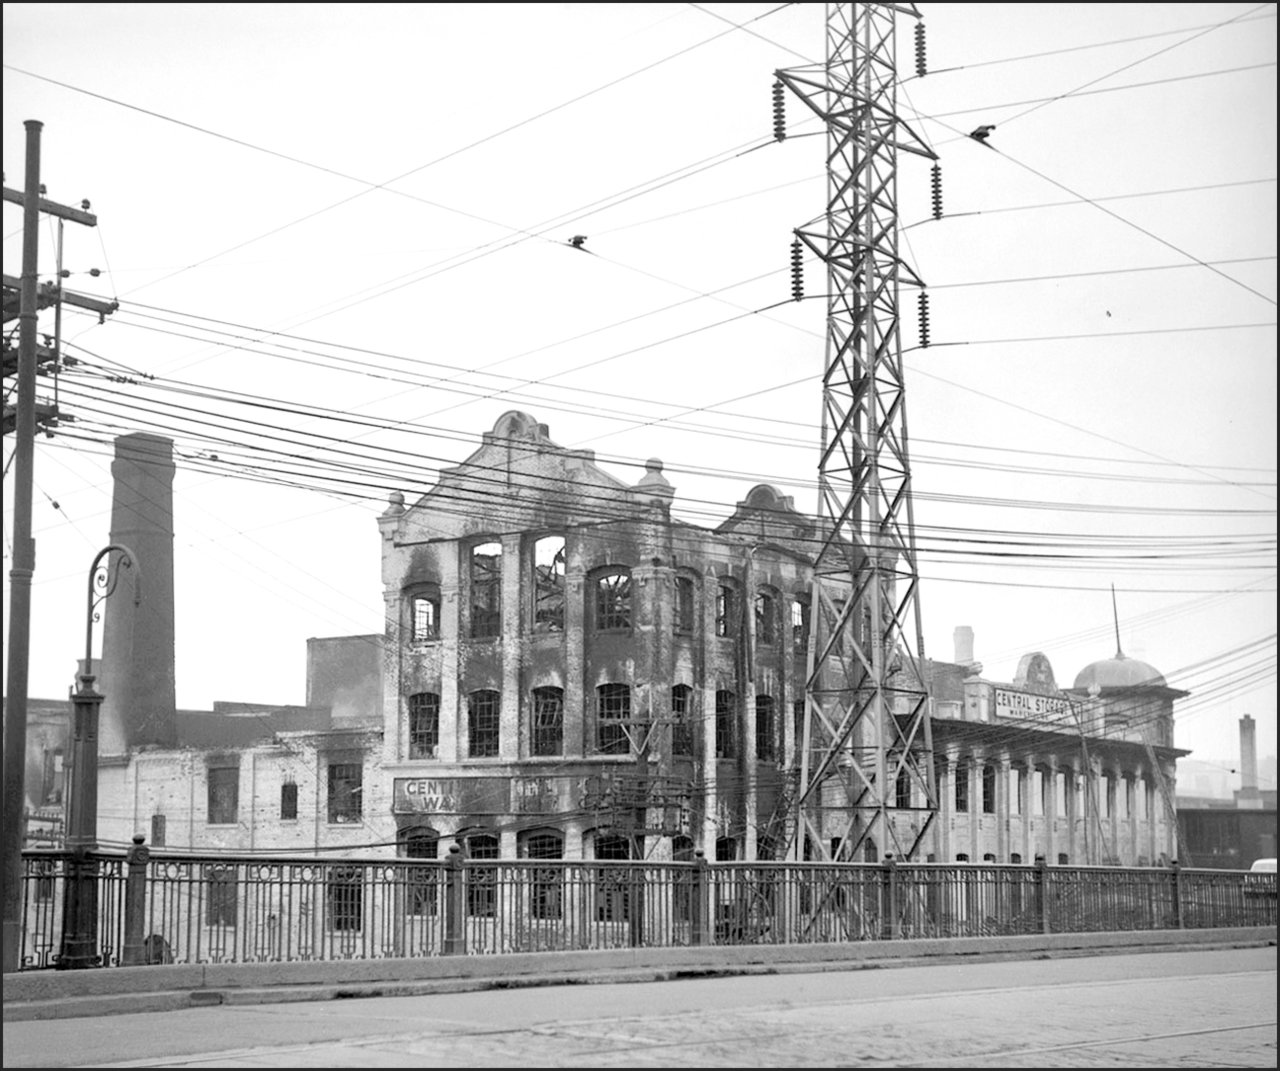 Reinhardt Brewery Company, Mark St., north side, west side of Don Roadway W. (Shows aftermath ...jpg